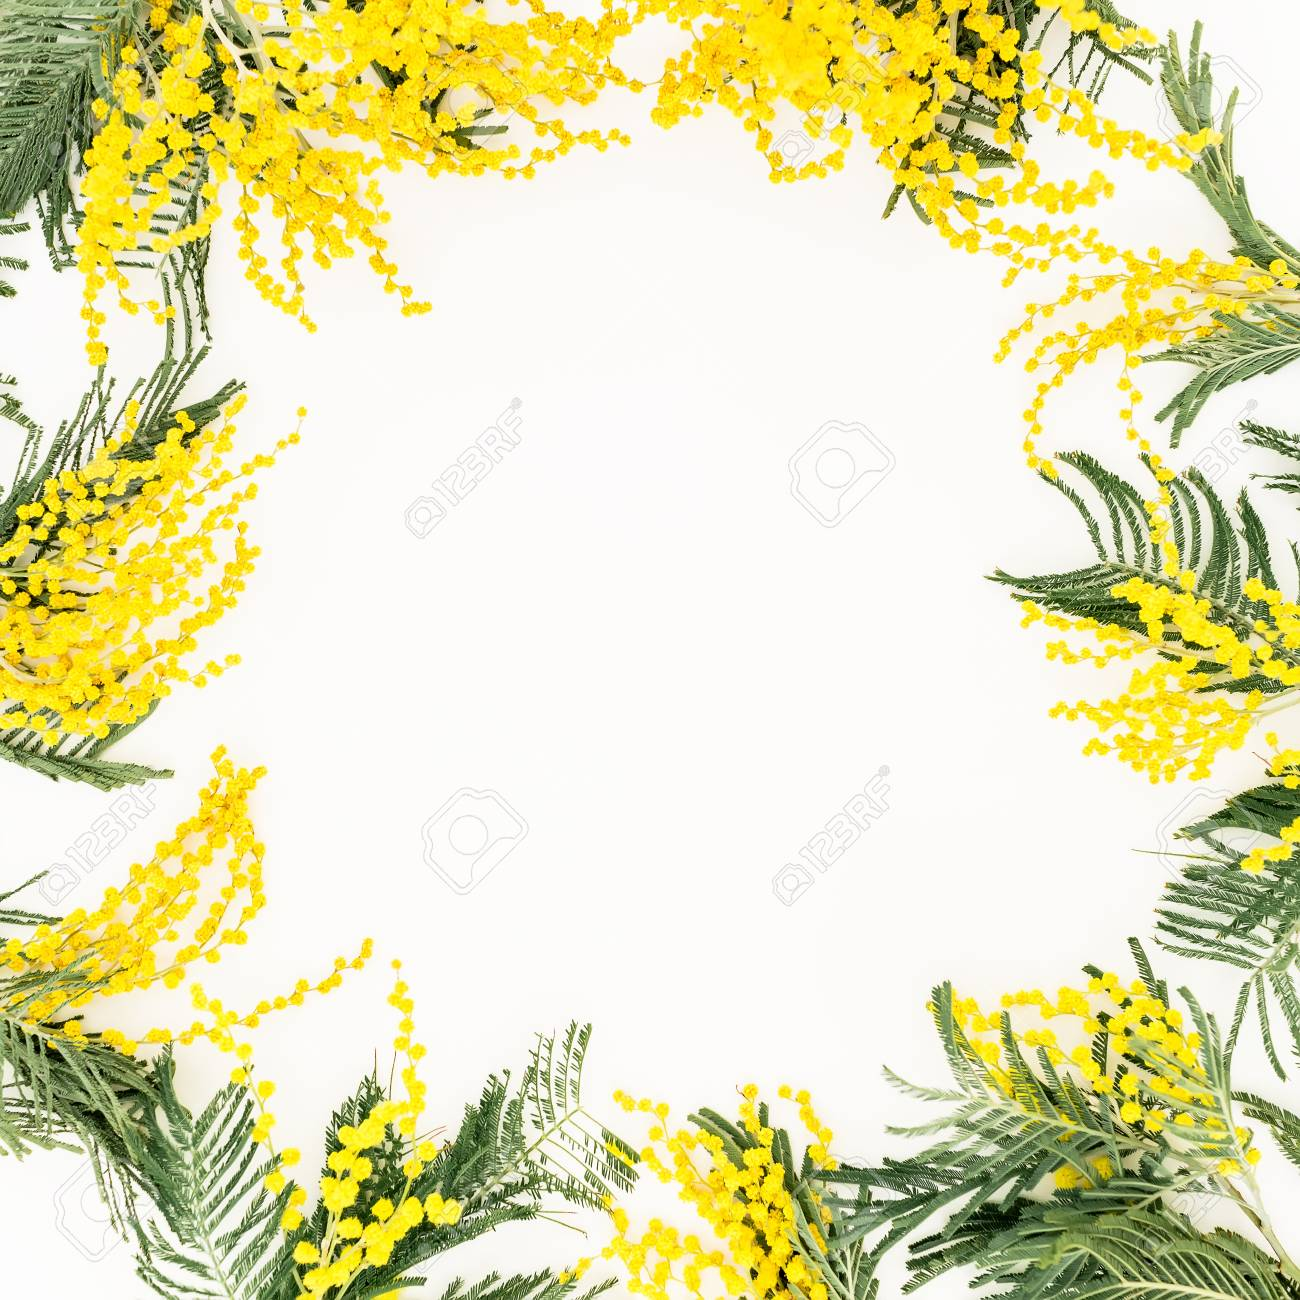 Floral Frame With Yellow Flowers Branches On White Background